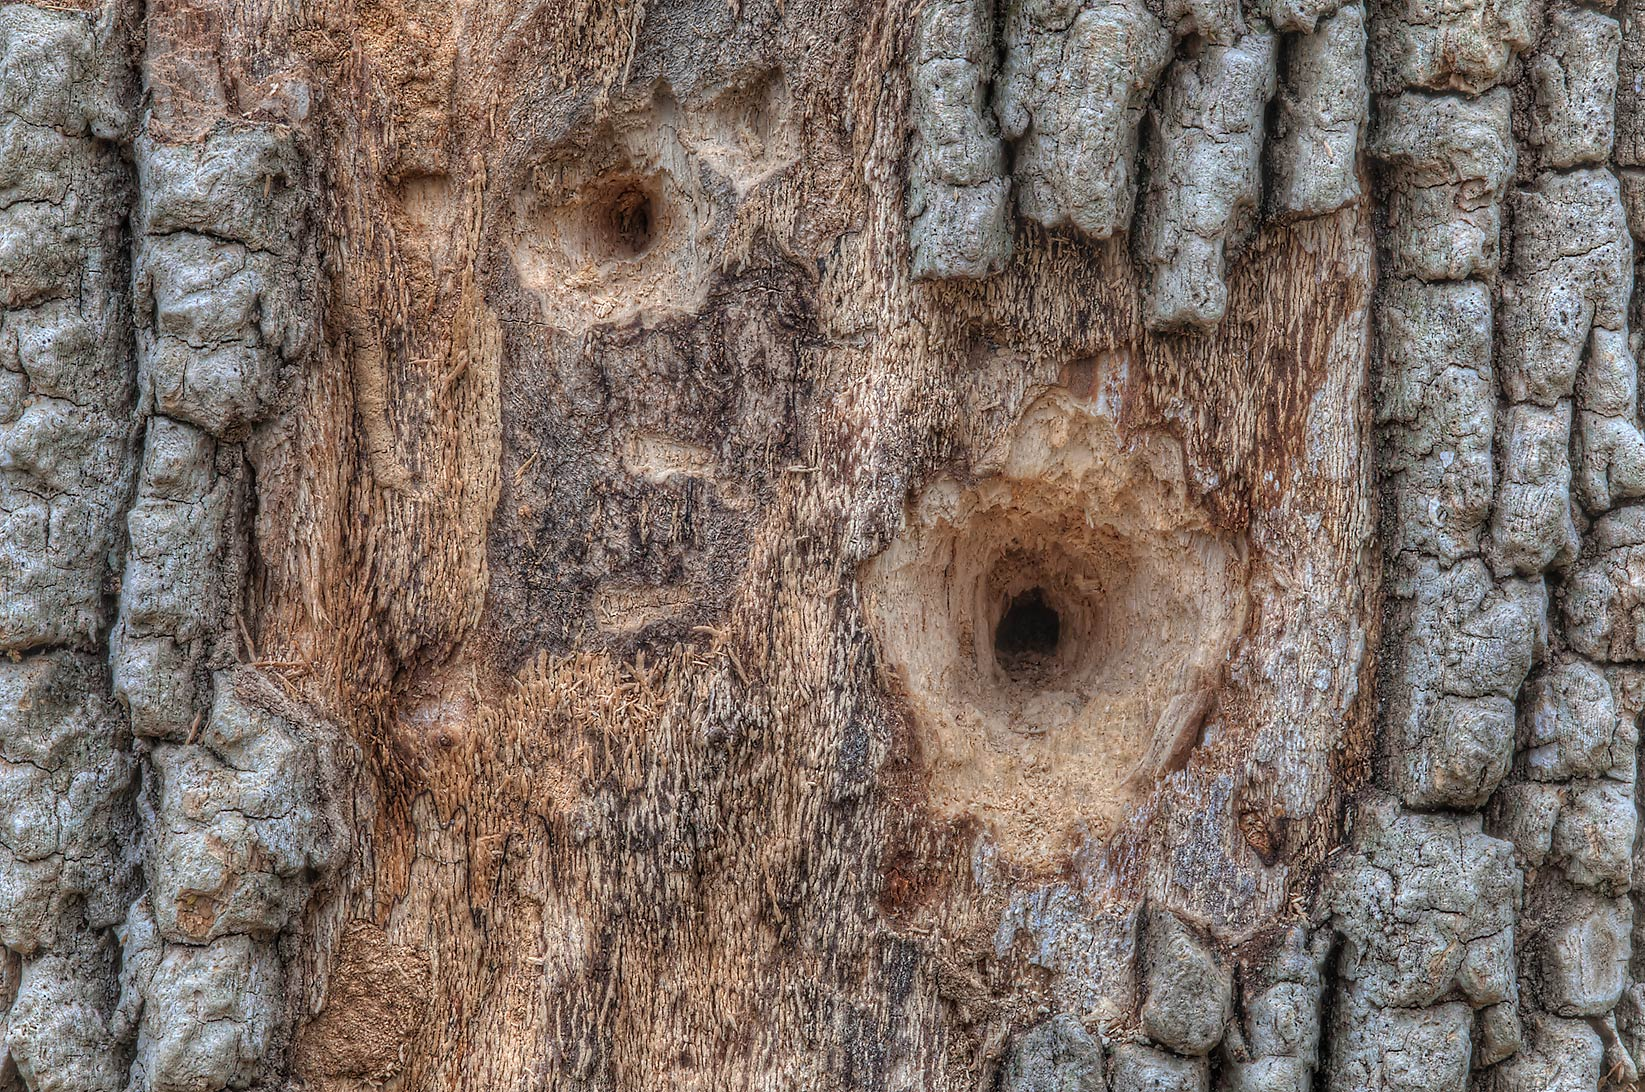 Dead tree with woodpecker holes near Racoon Run...Creek Park. College Station, Texas